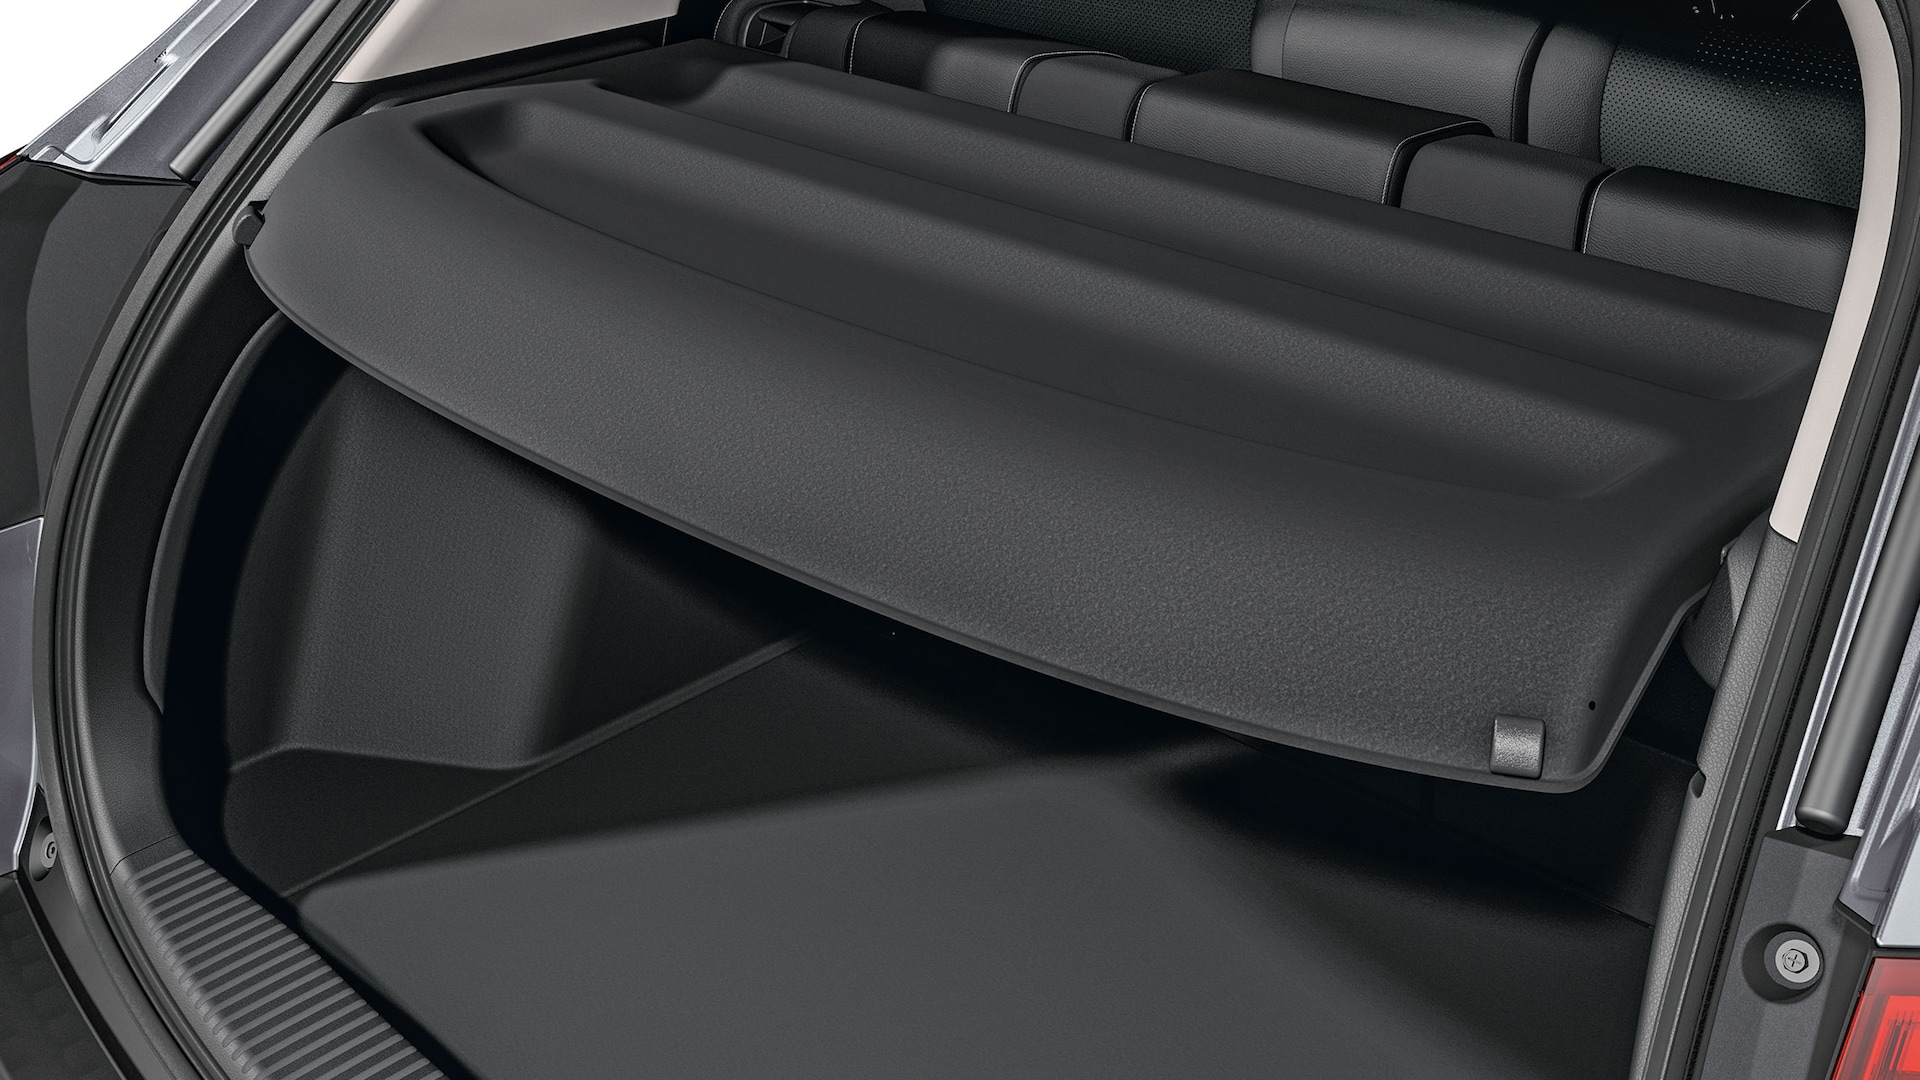 Privacy cover detail displayed in open tailgate in the 2019 Honda HR-V.